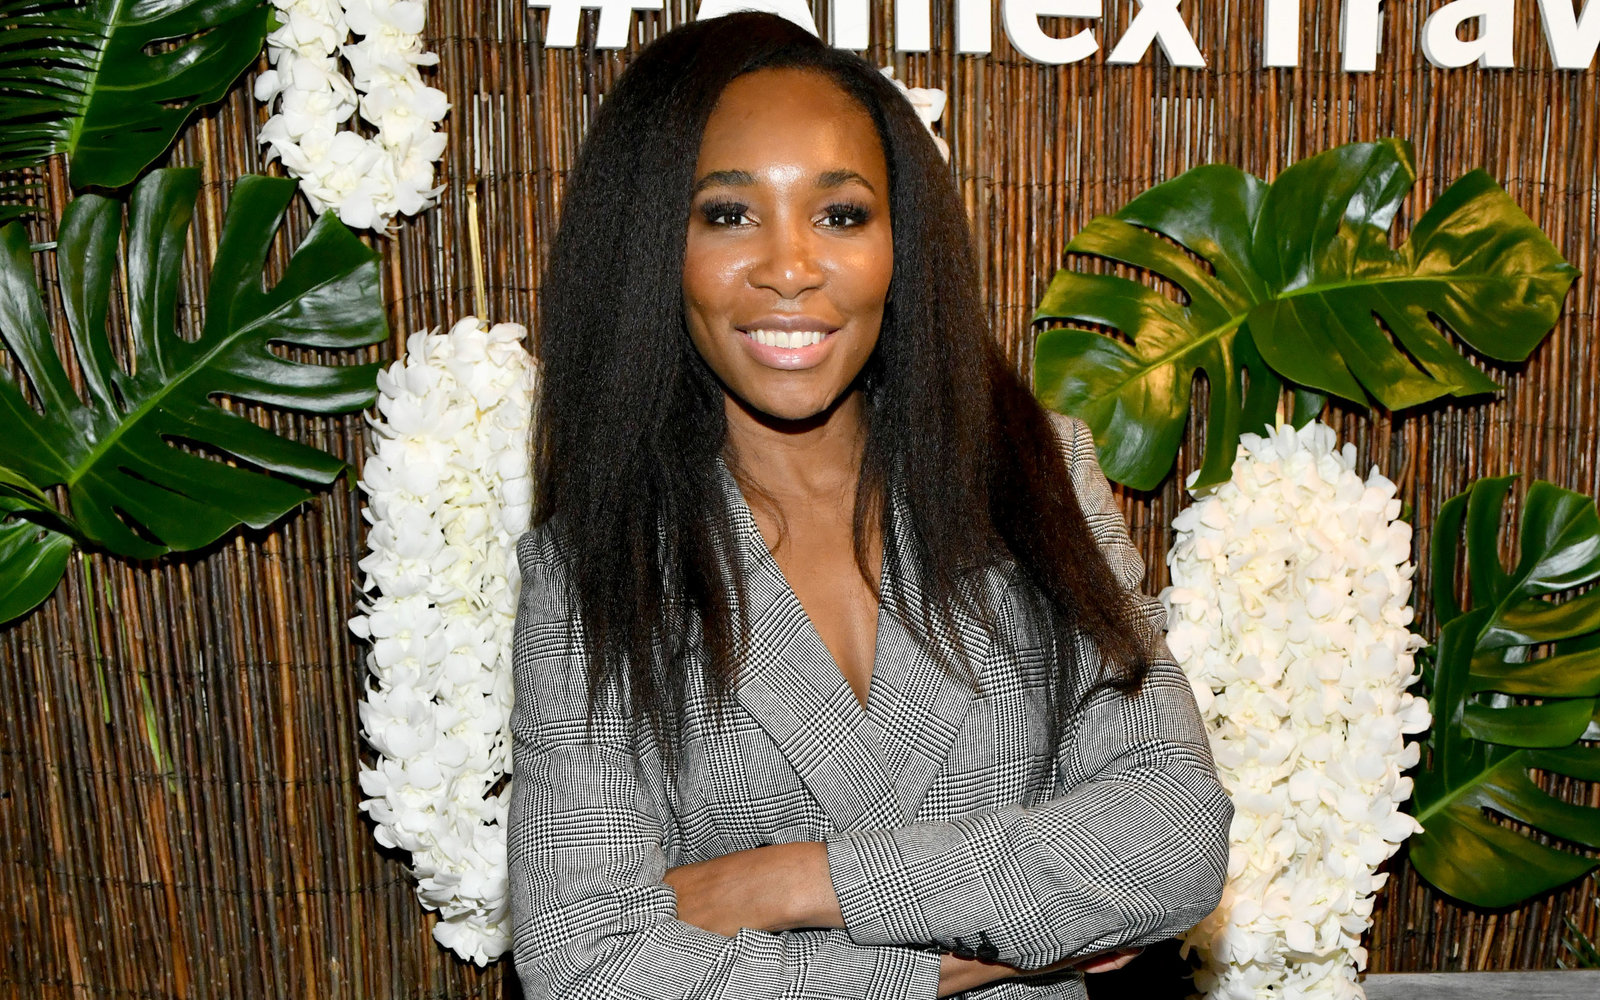 NEW YORK, NEW YORK - NOVEMBER 07:  Venus Williams hosts an immersive experience presented by American Express Travel at the Greenwich Hotel on November 7, 2019, in New York City. (Photo by Craig Barritt/Getty Images for American Express)